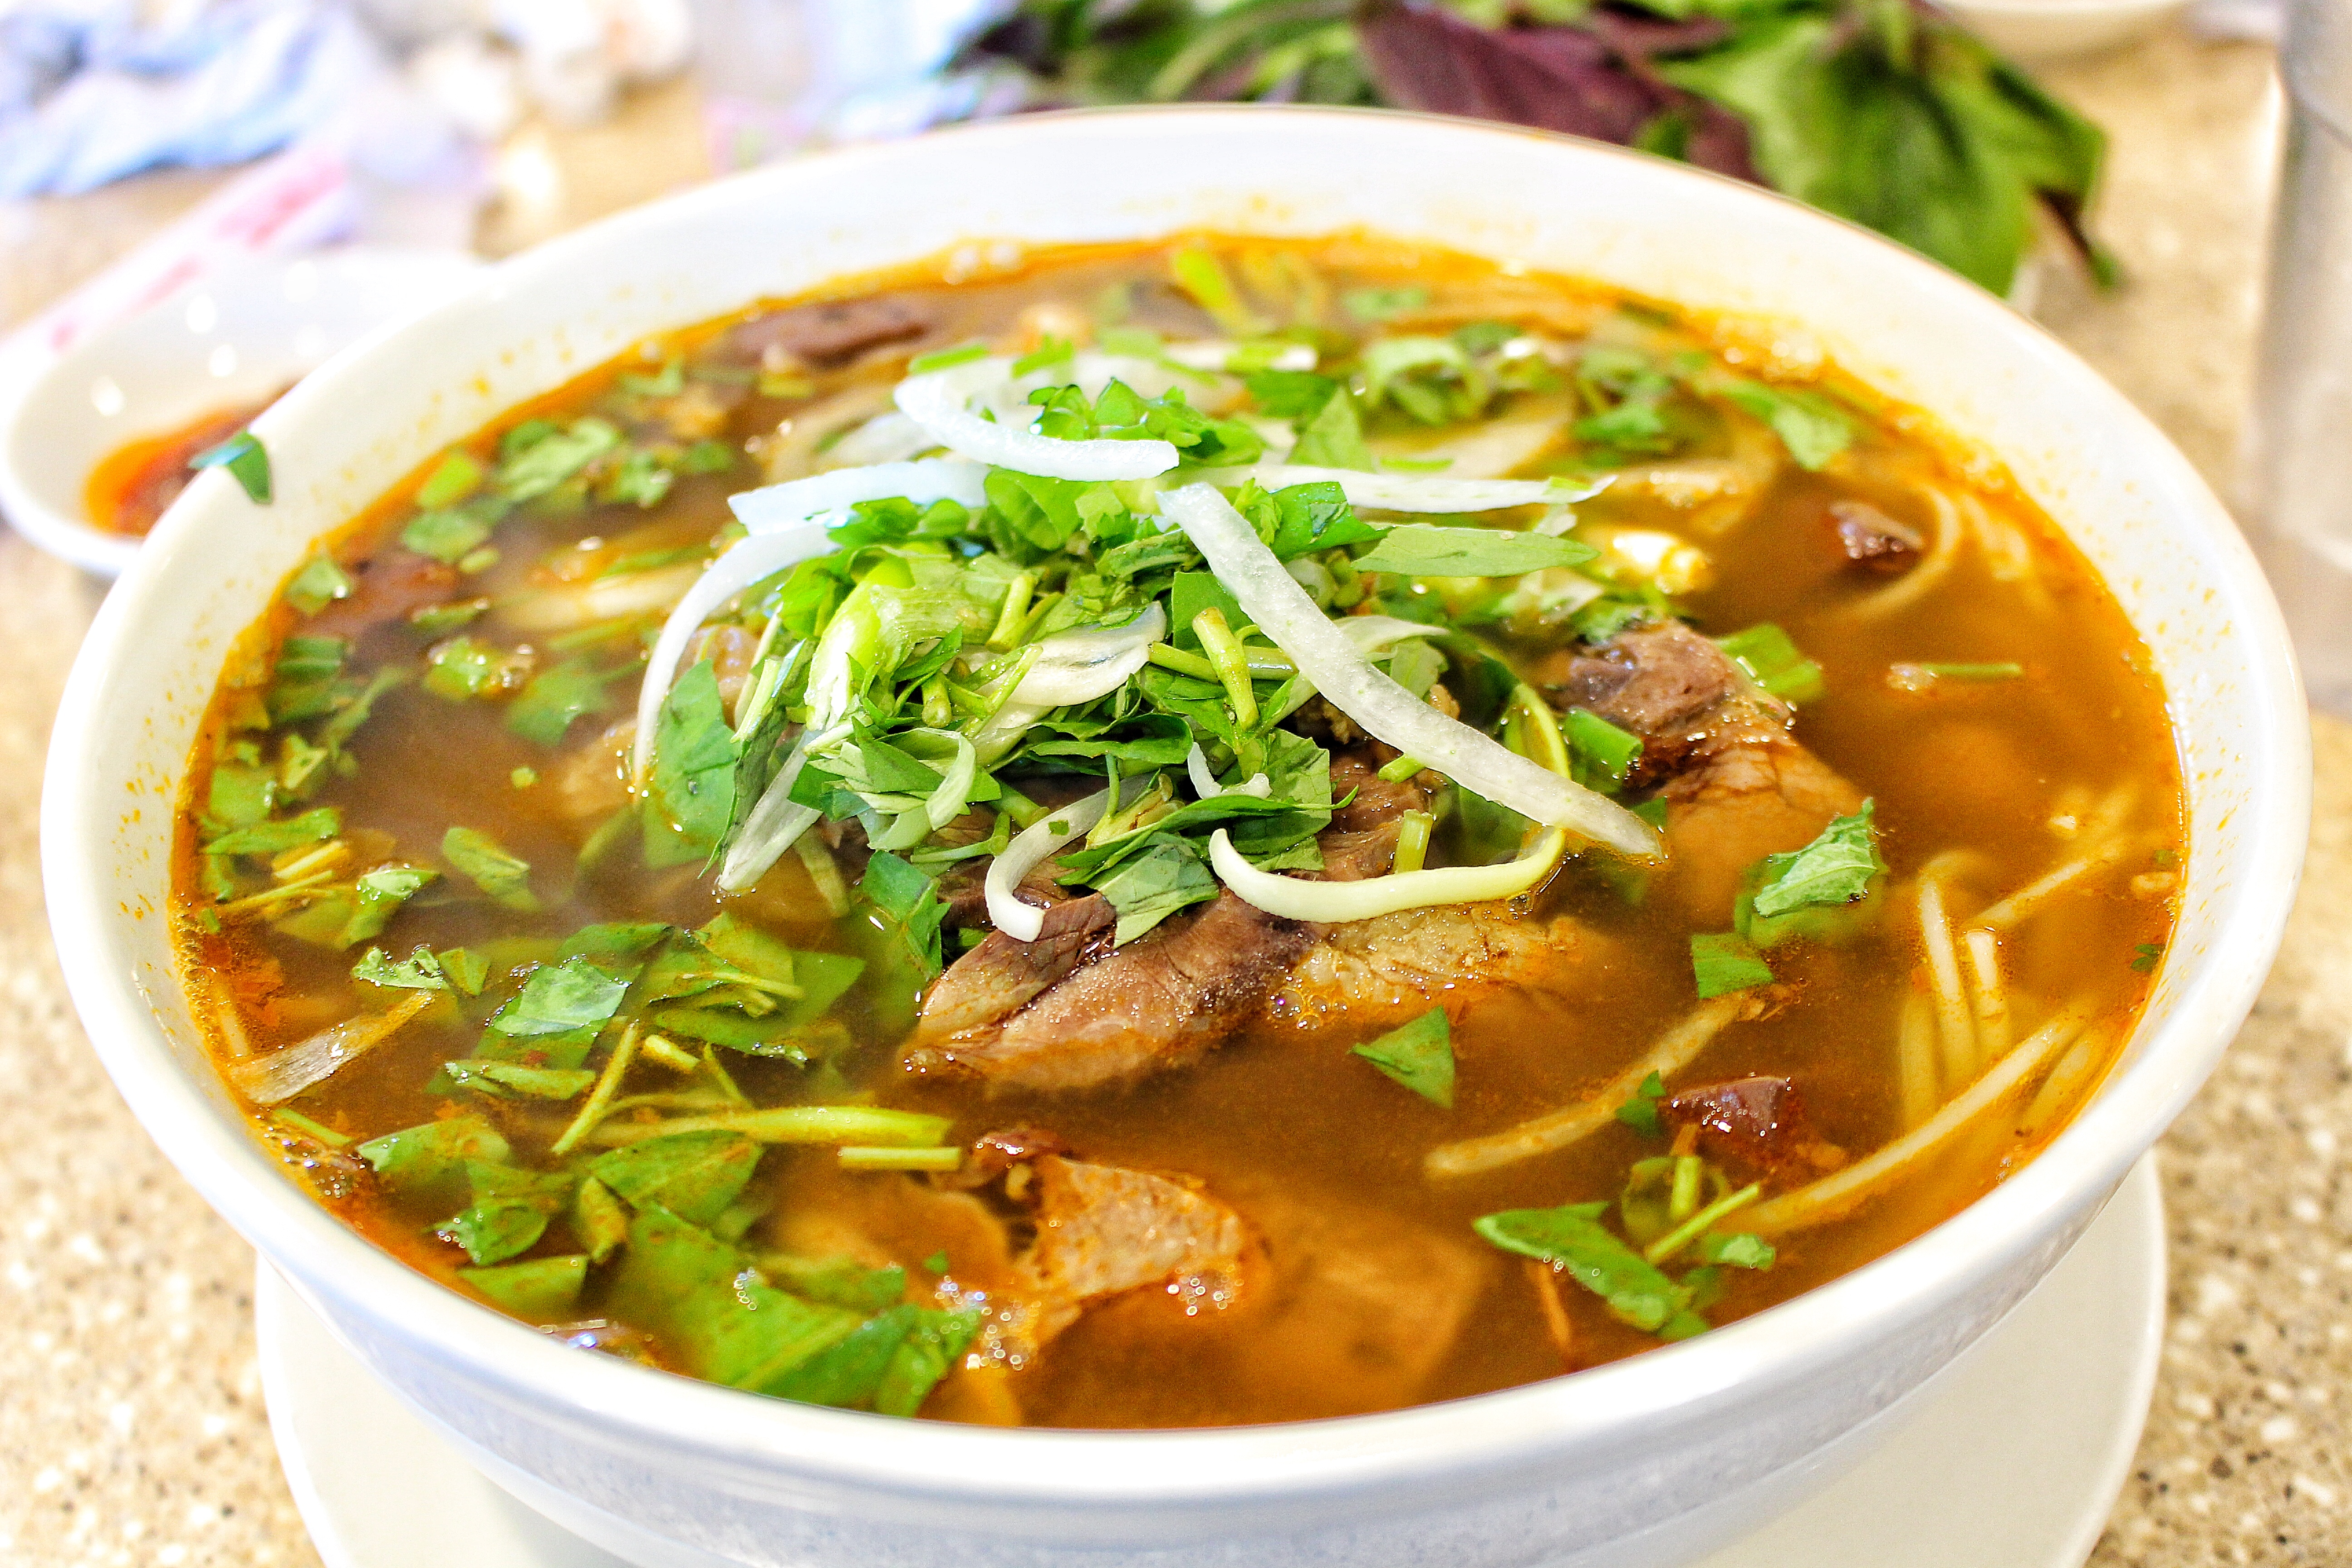 How to order a healthier Vietnamese Soup - Dash of Ting